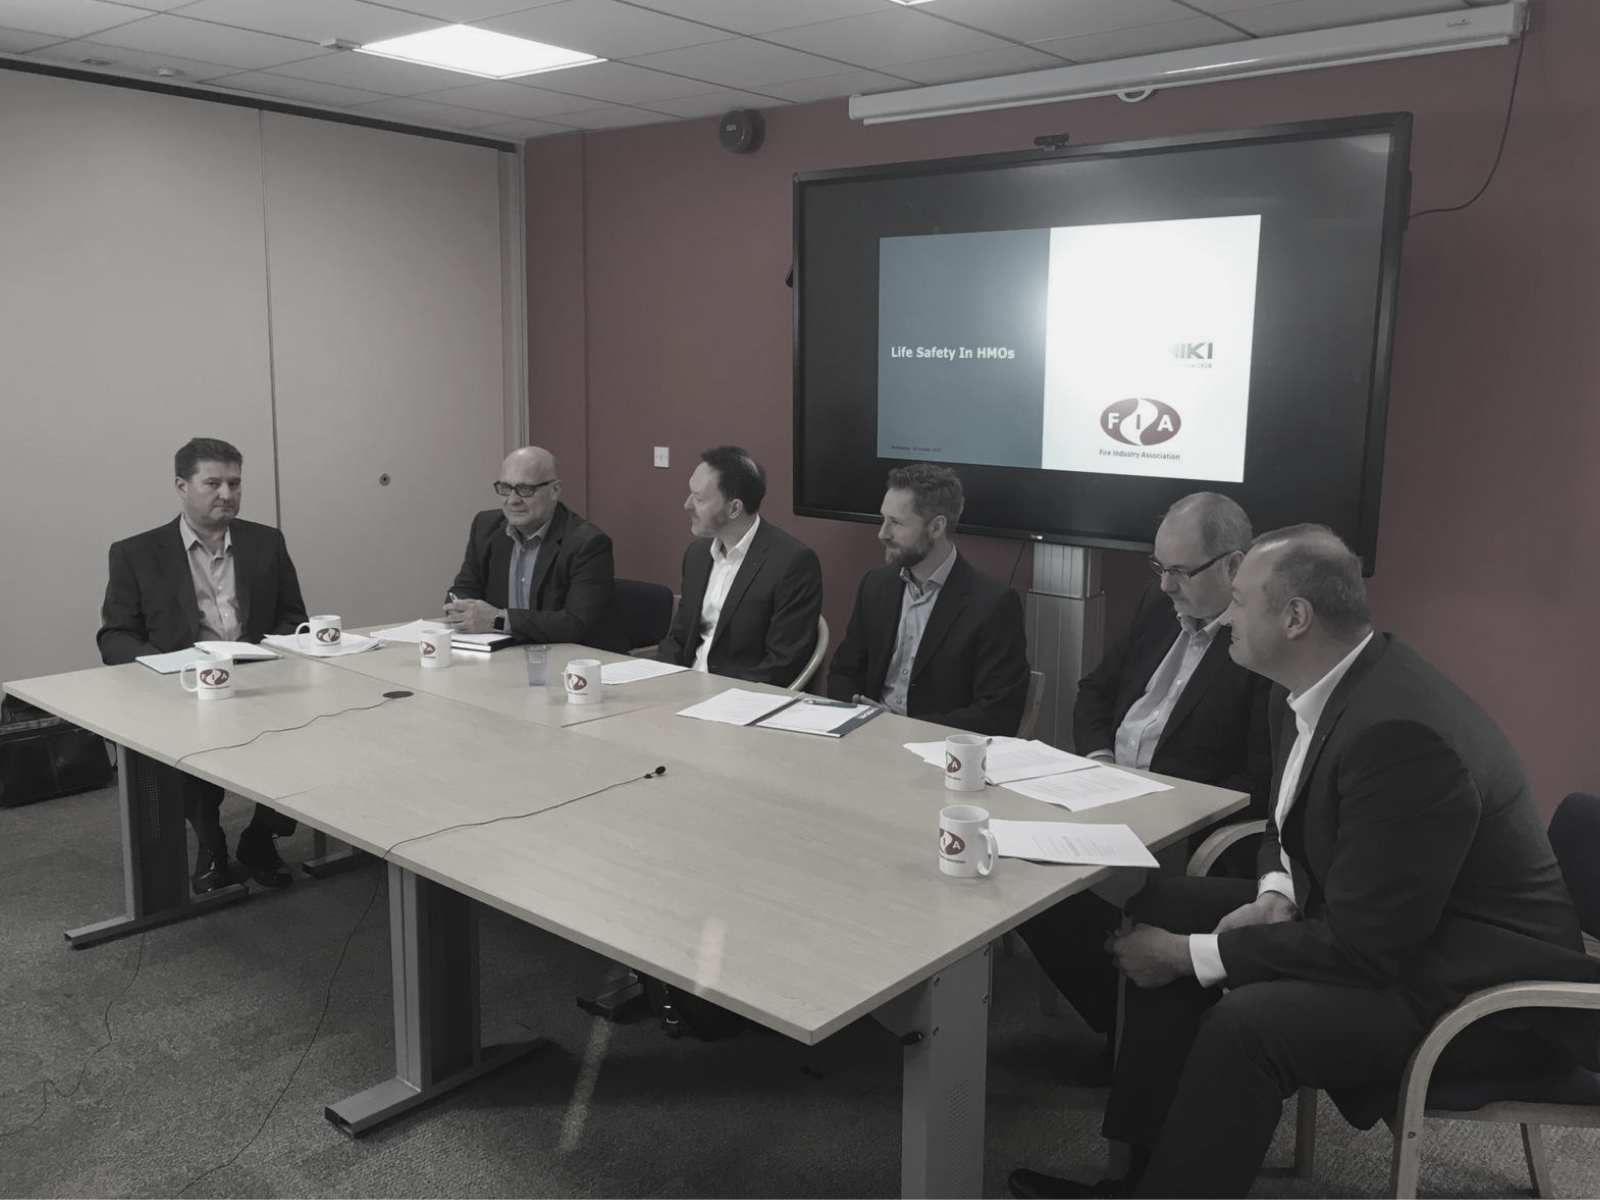 HOCHIKI EUROPE AND FIA HOST INDUSTRY ROUNDTABLE DISCUSSING LIFE SAFETY IN HMOs